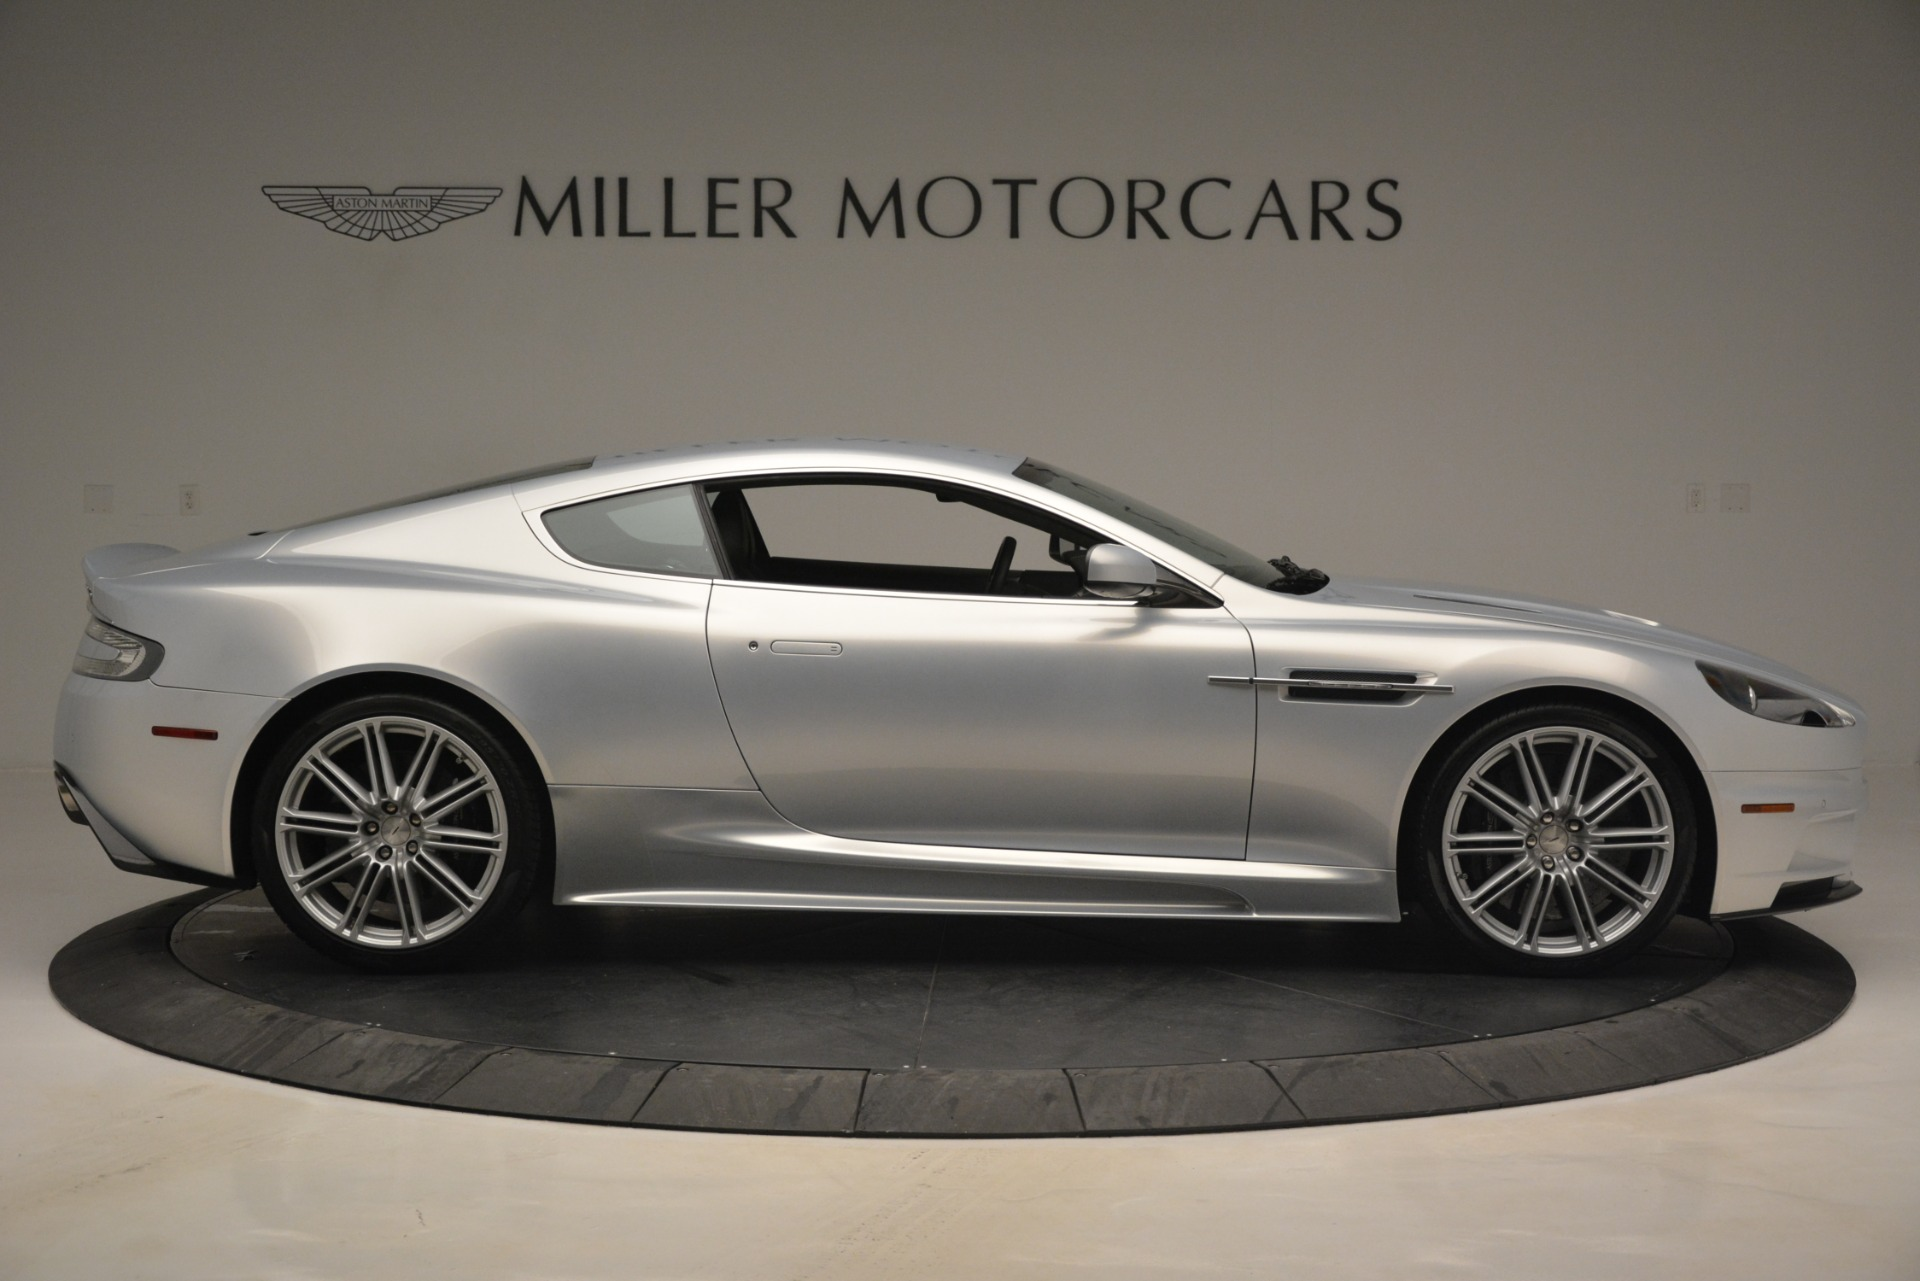 Used 2009 Aston Martin DBS Coupe For Sale In Westport, CT 3033_p9